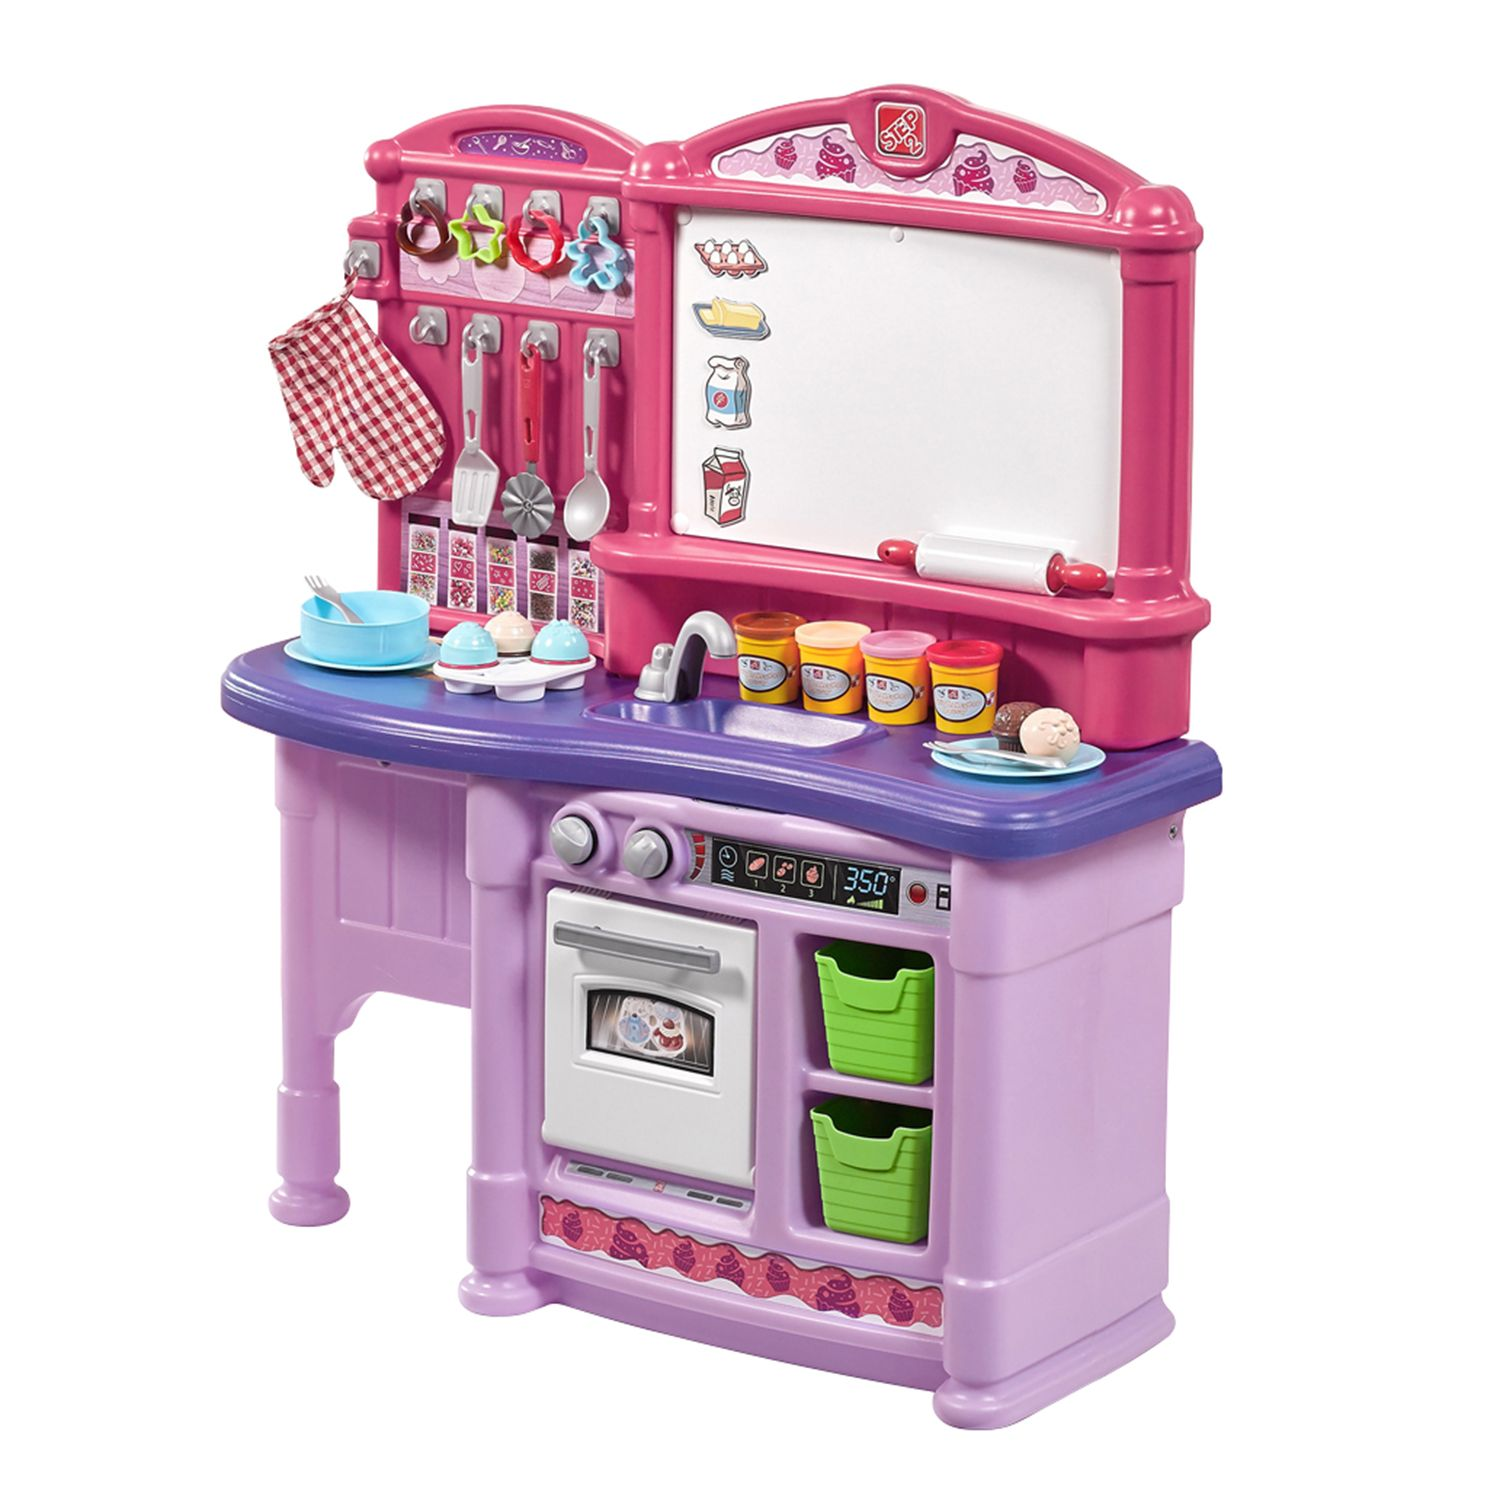 Top Toy. Step2 Create \u0026 Bake Kitchen Toys for Girls | Kohl\u0027s